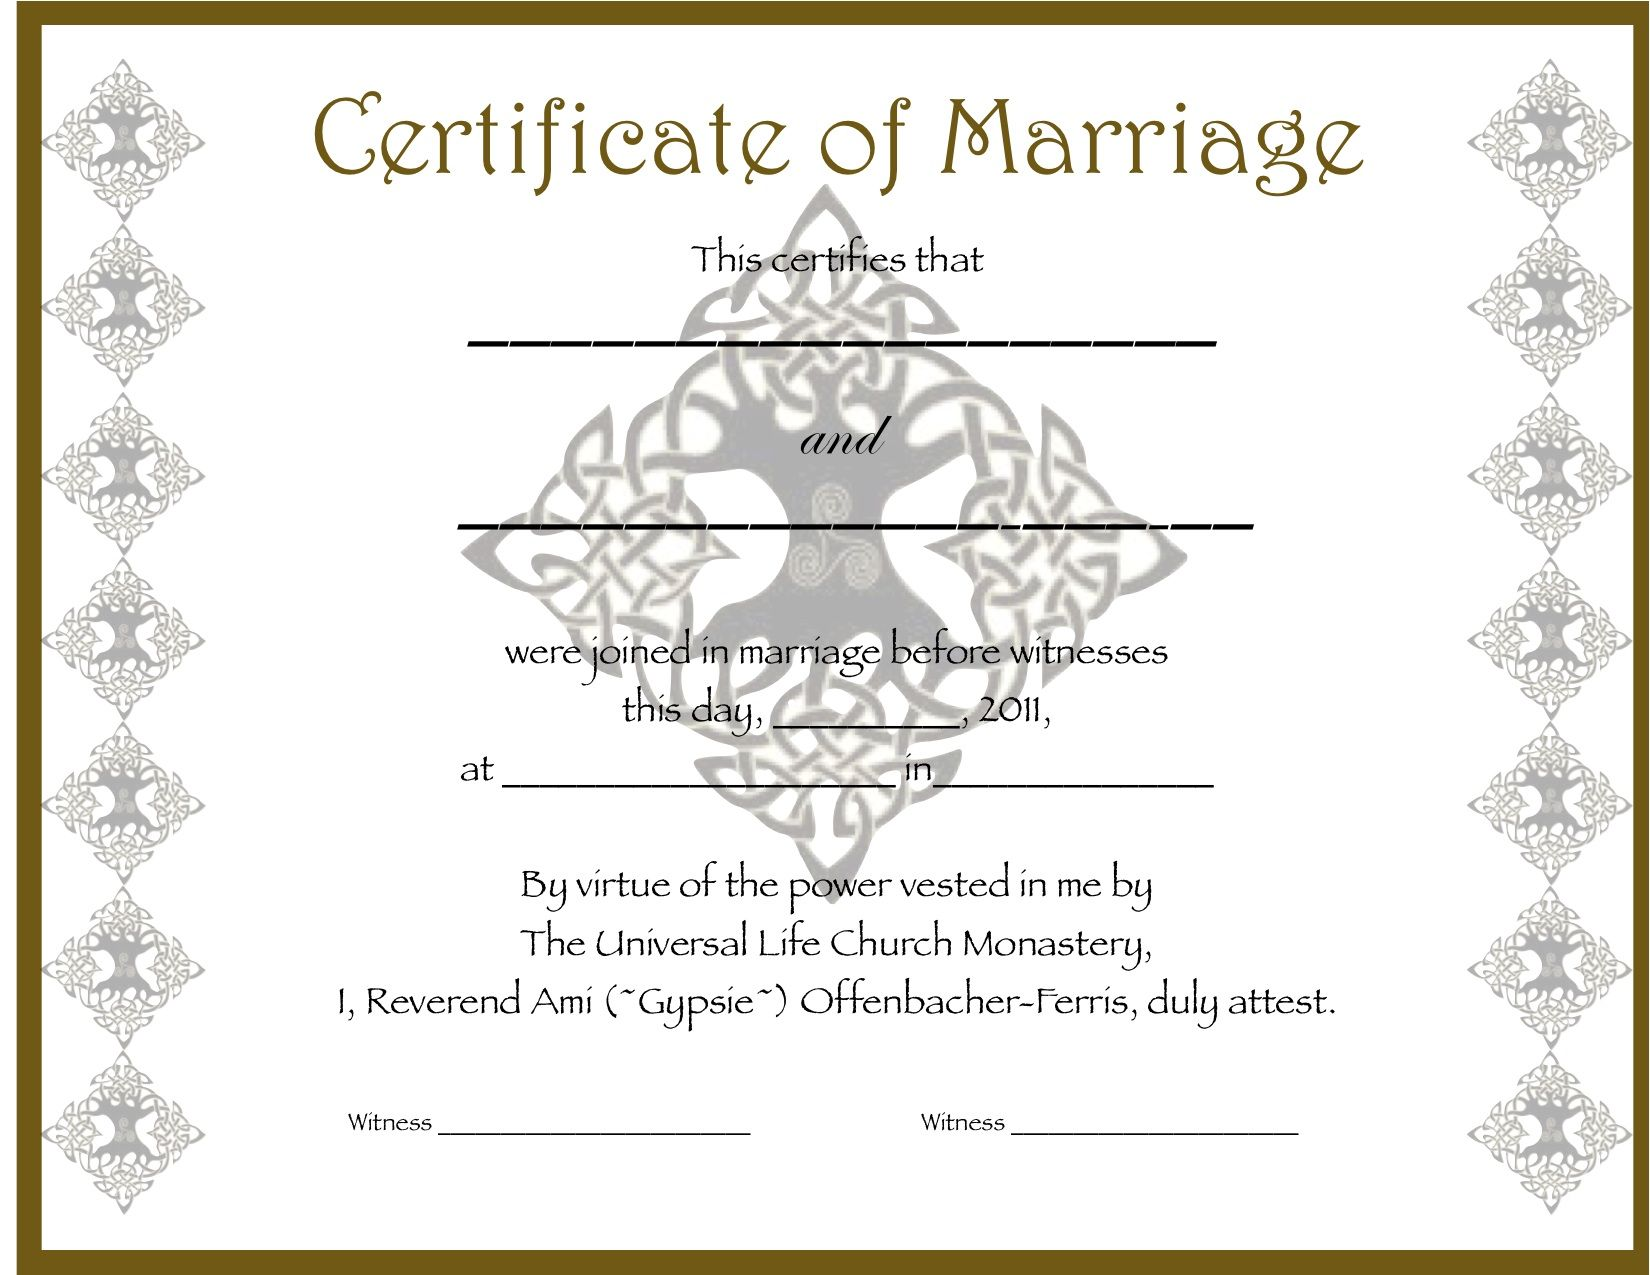 Marriage certificate marriage stuff pinterest certificate marriage certificate yadclub Choice Image